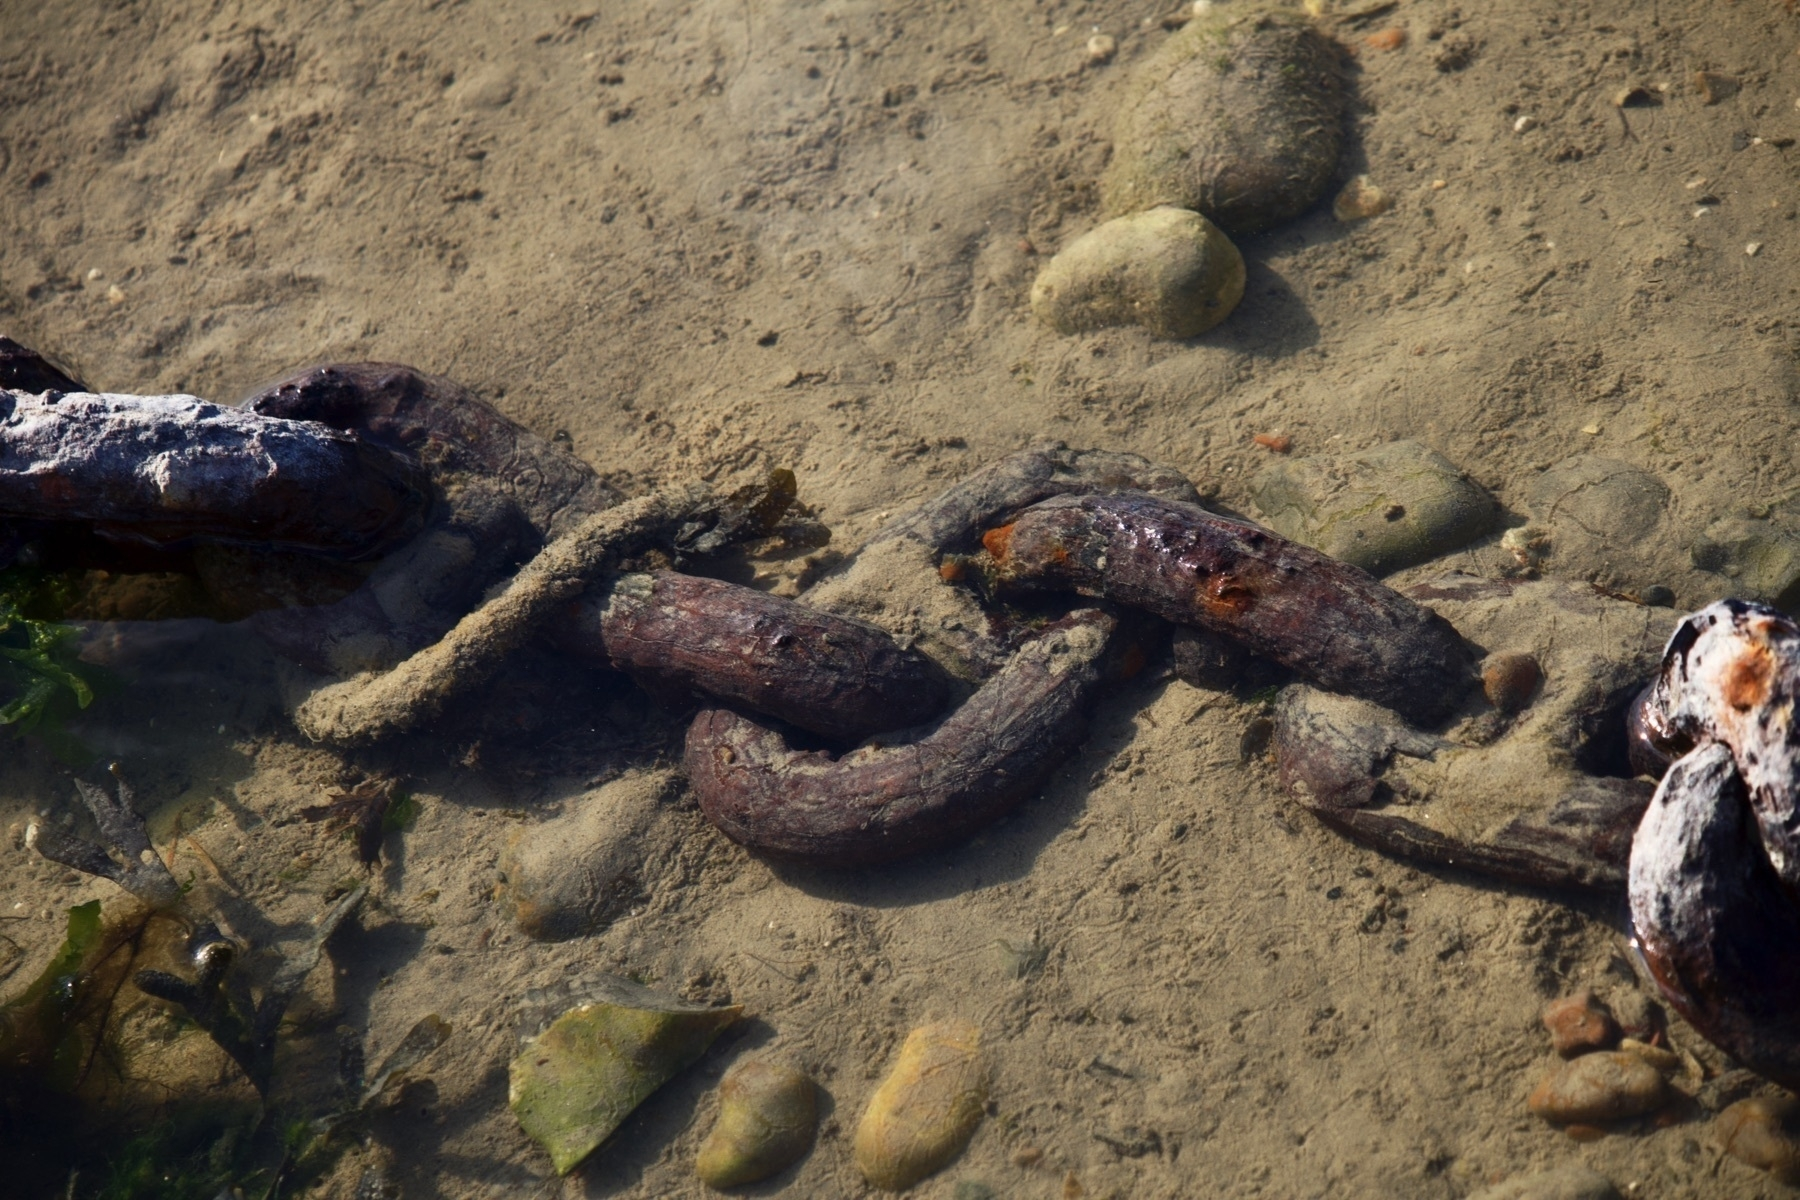 A chain in the Adur at low tide.